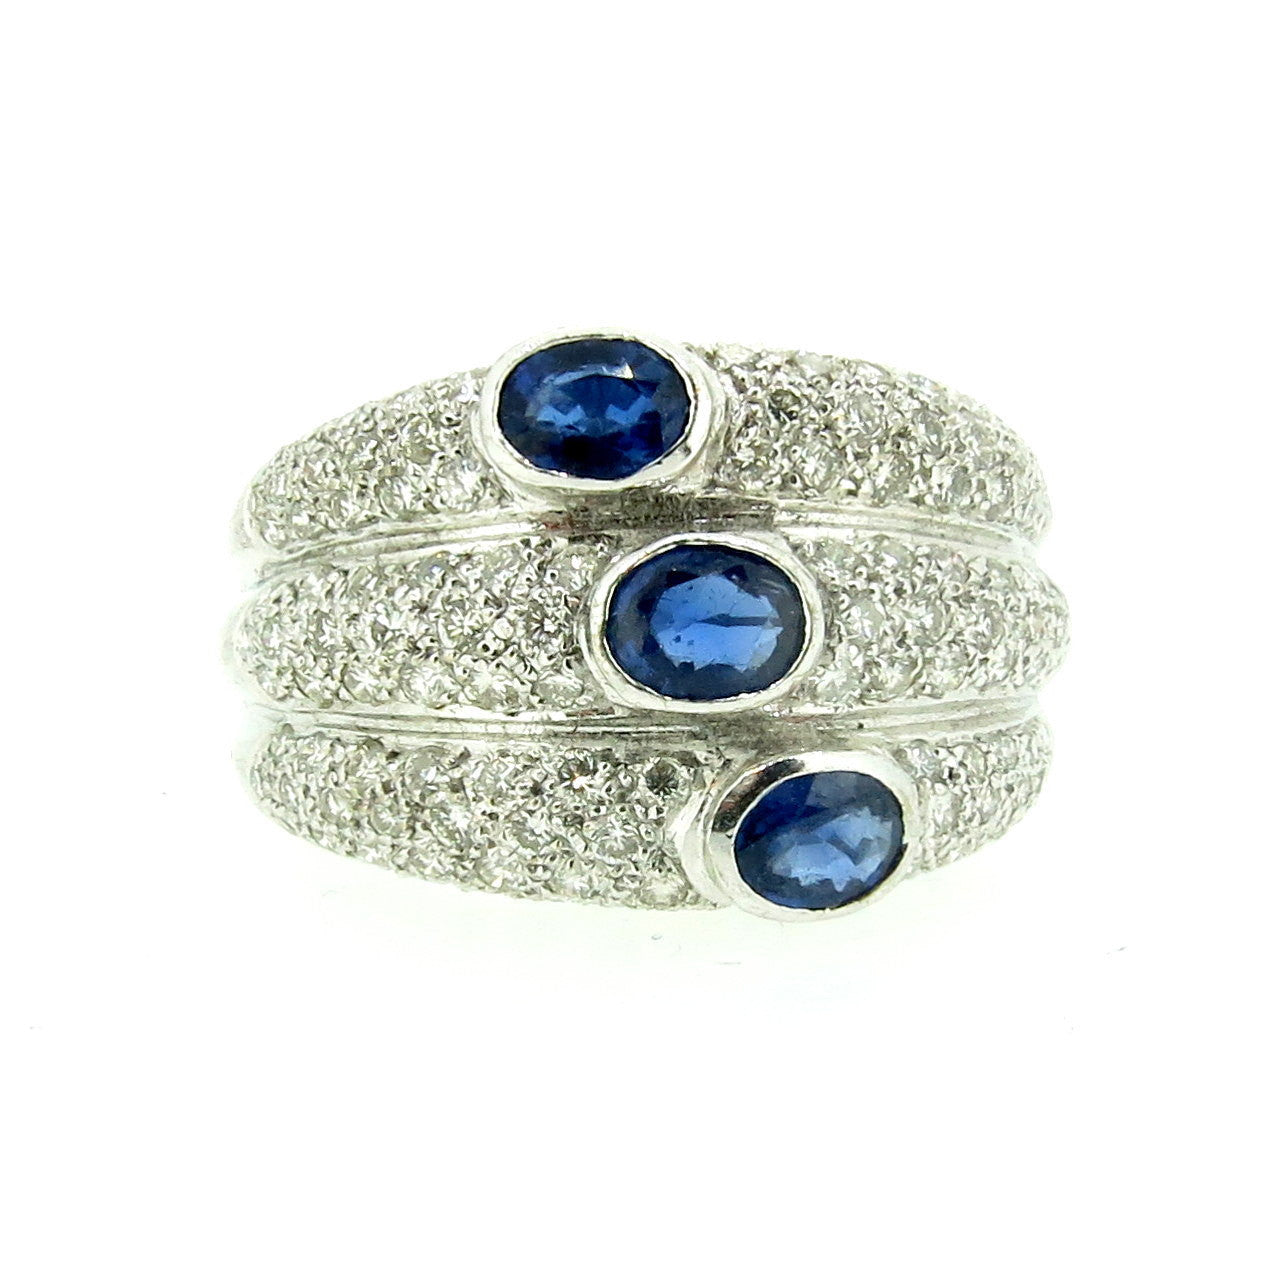 Sapphire & Diamond Cocktail Ring, Gemstone Ring